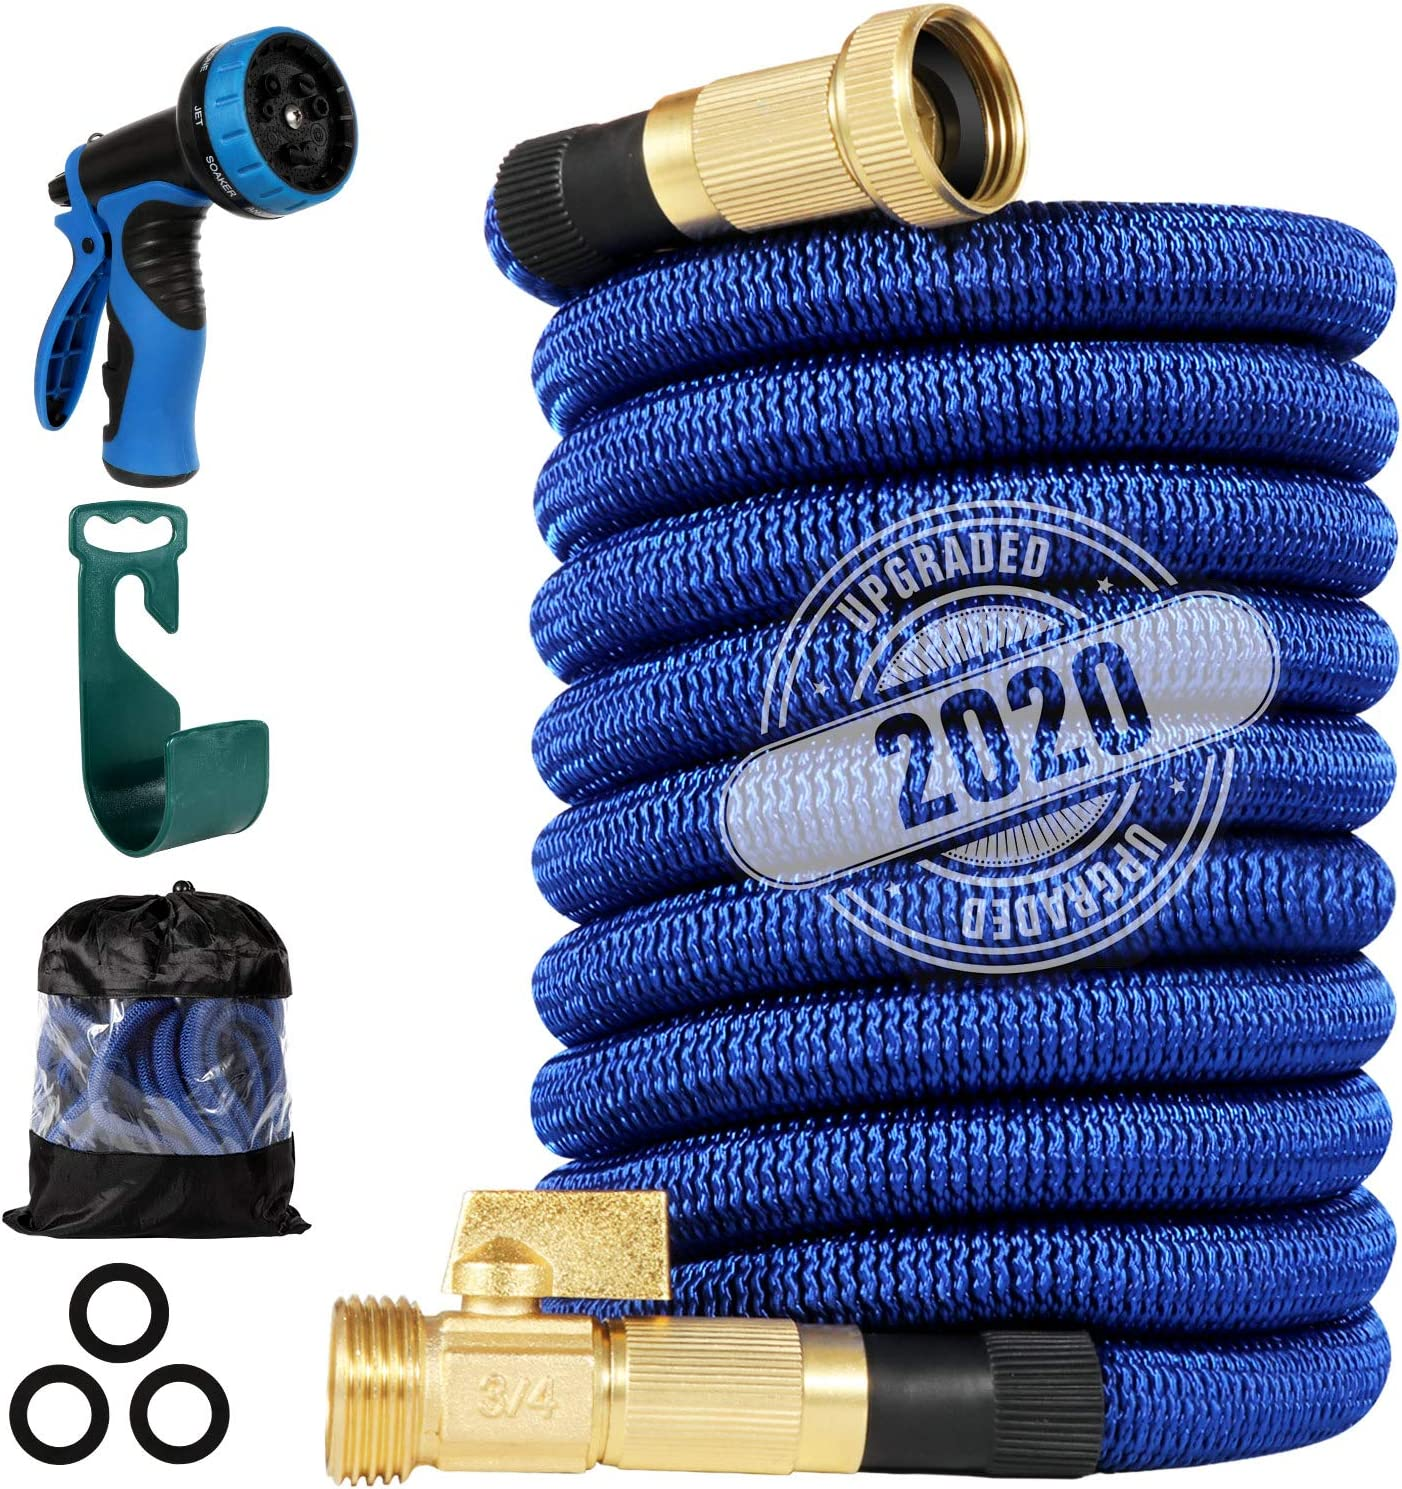 "200 ft Expandable Garden Hose,Strongest Flexible Water Hose, 9 Functions Sprayer with Double Latex Core, 3/4"" Solid Brass Fittings, Extra Strength Fabric - 2020 Upgraded Lightweight Expanding Hose"